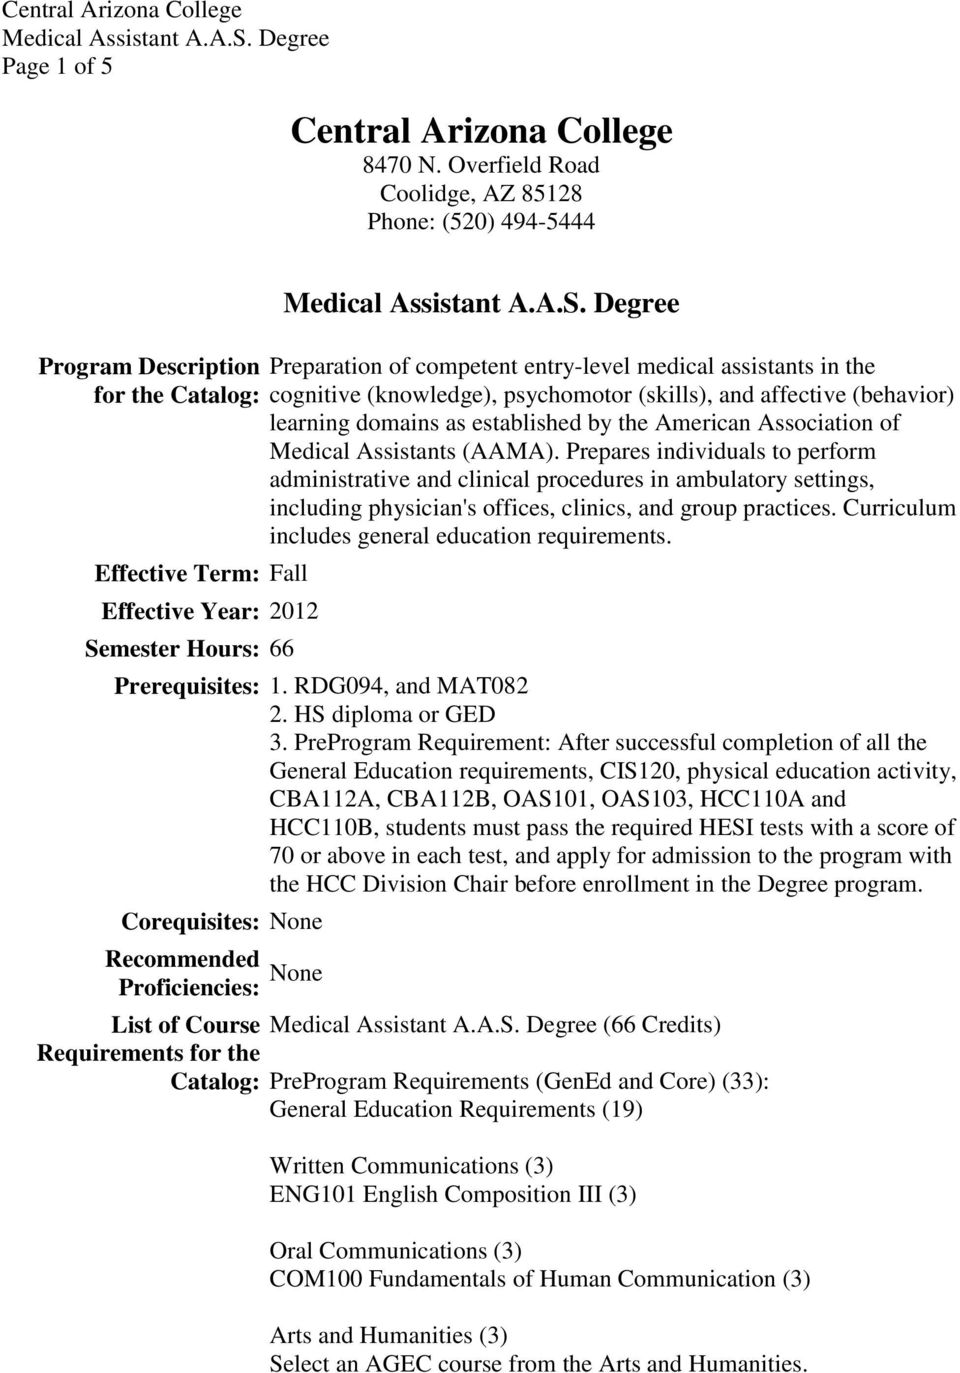 assistants in the cognitive (knowledge), psychomotor (skills), and affective (behavior) learning domains as established by the American Association of Medical Assistants (AAMA).